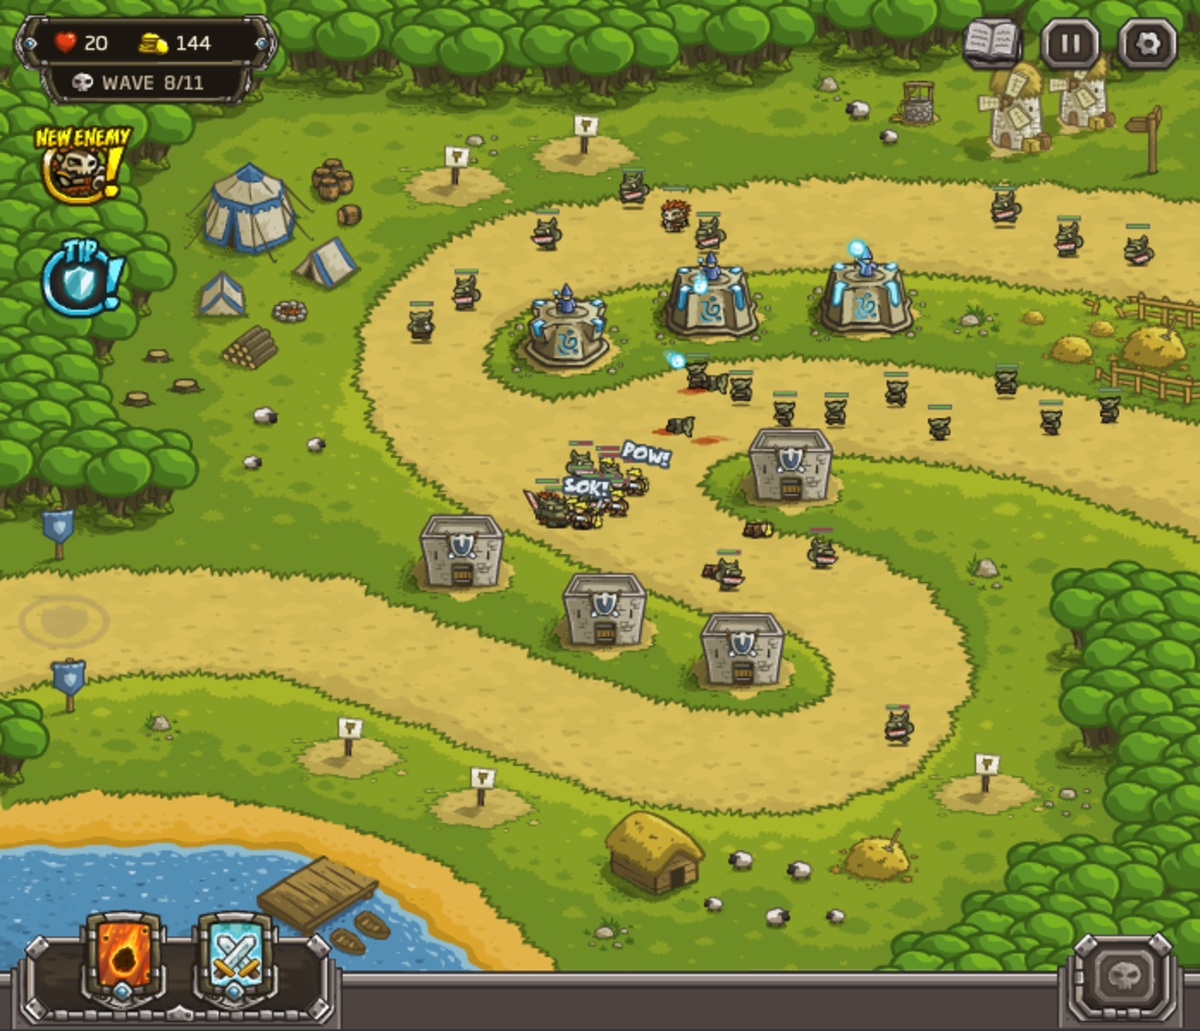 Kingdom Rush walkthrough: Level 3 - Pagras